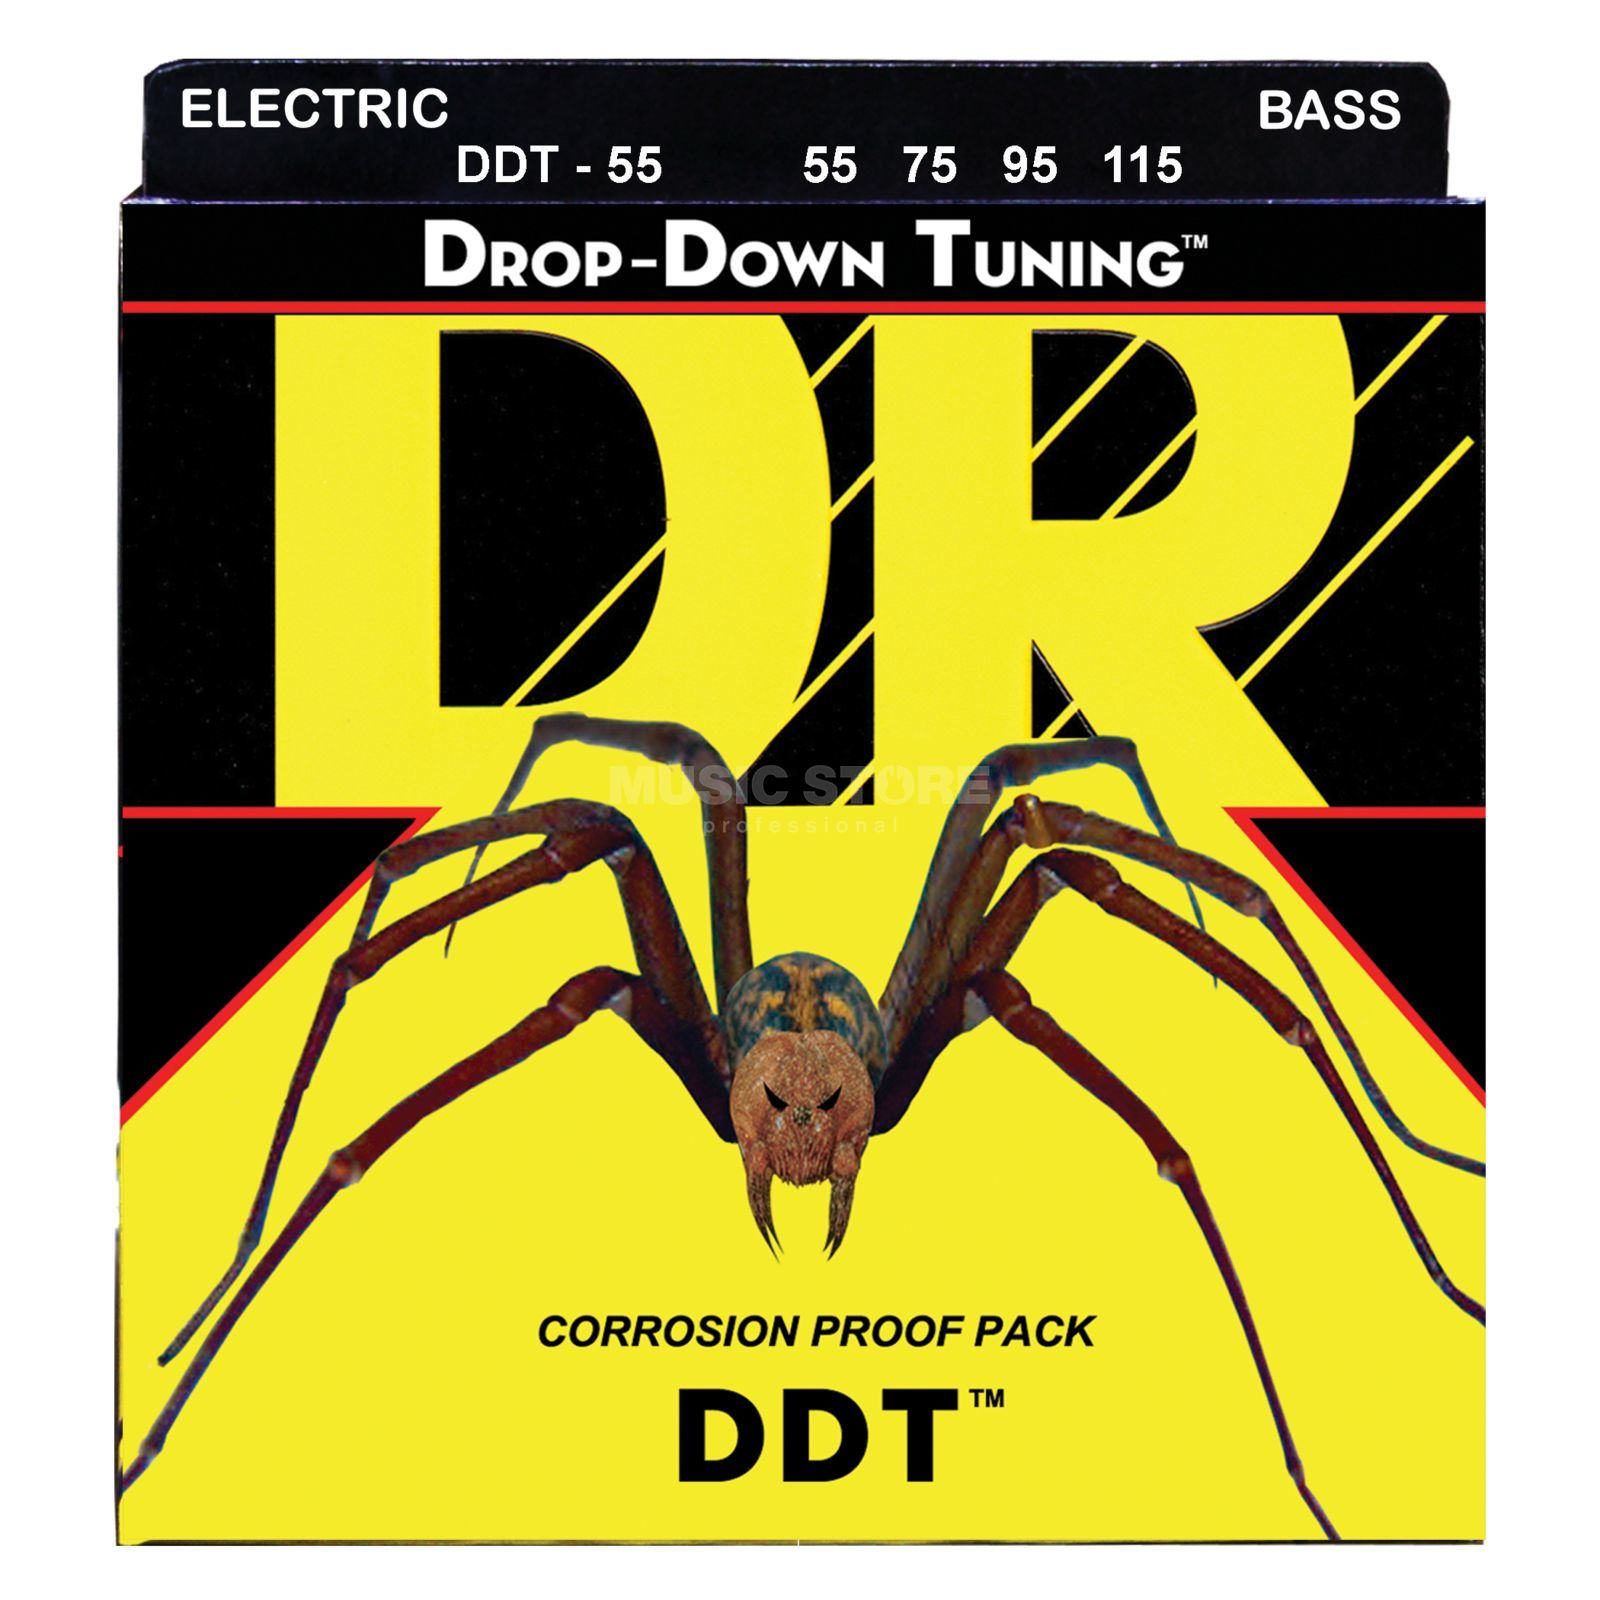 DR 4 Bass Strings 55-115 Drop-Down Tuning DDT-55 Product Image